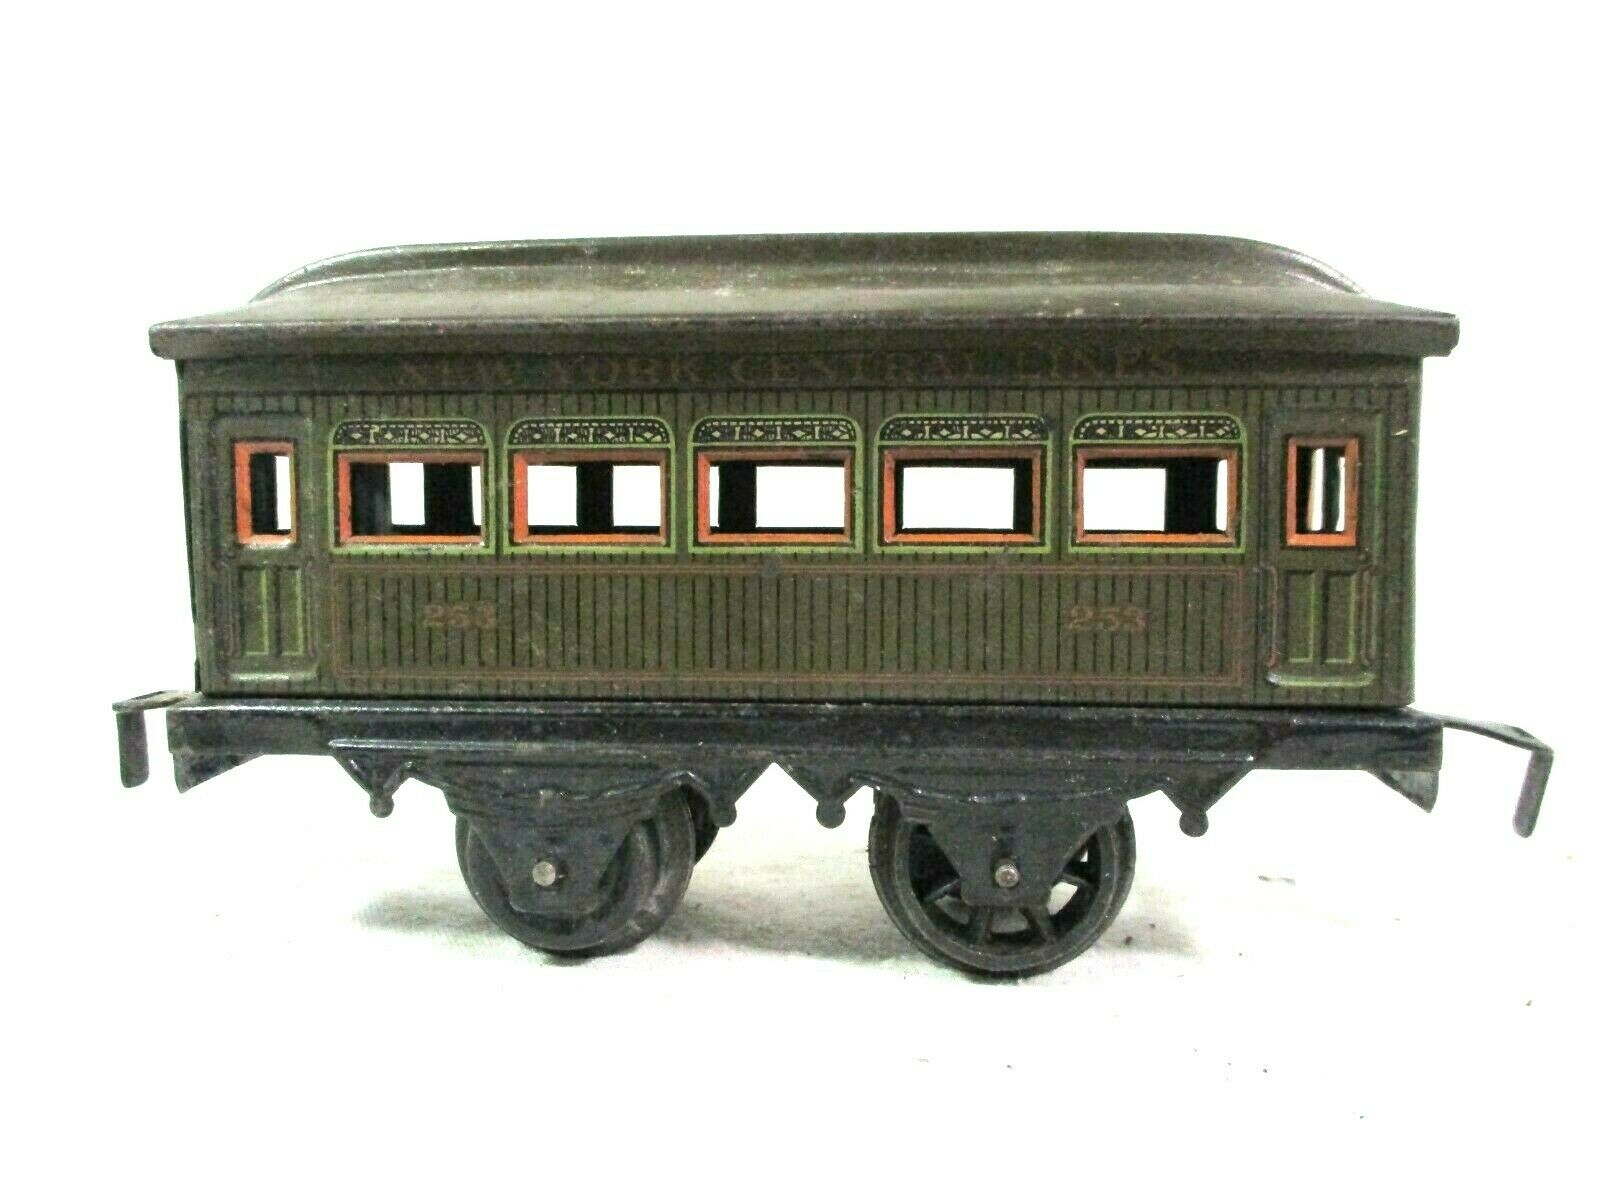 Bing New York Central NYC 253 Passenger Car O Scale Model Railway Train B66-45